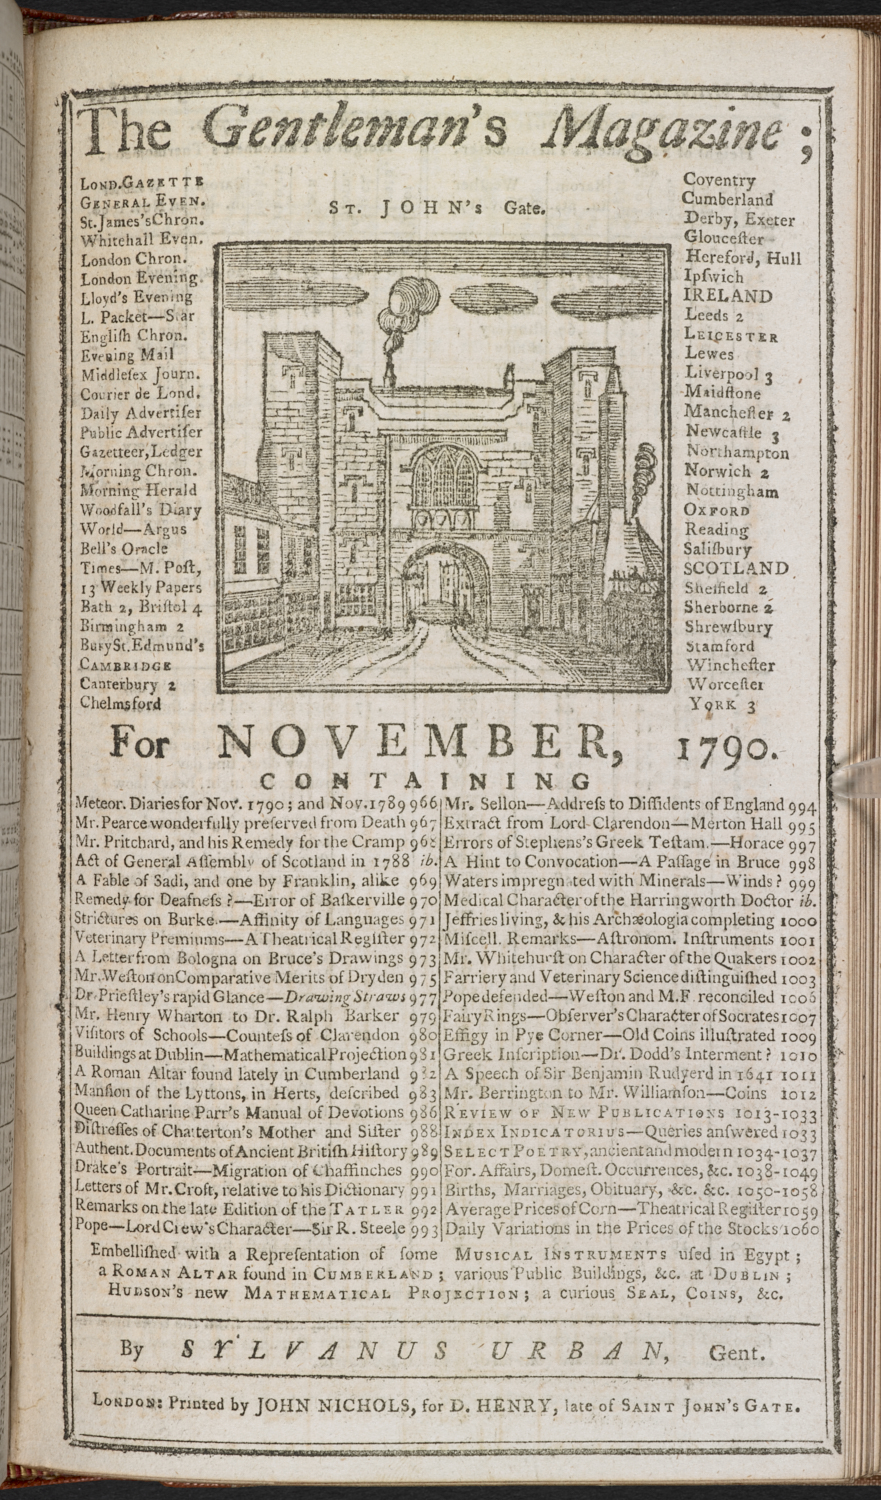 The front page of the Gentleman's Magazine for November, 1790